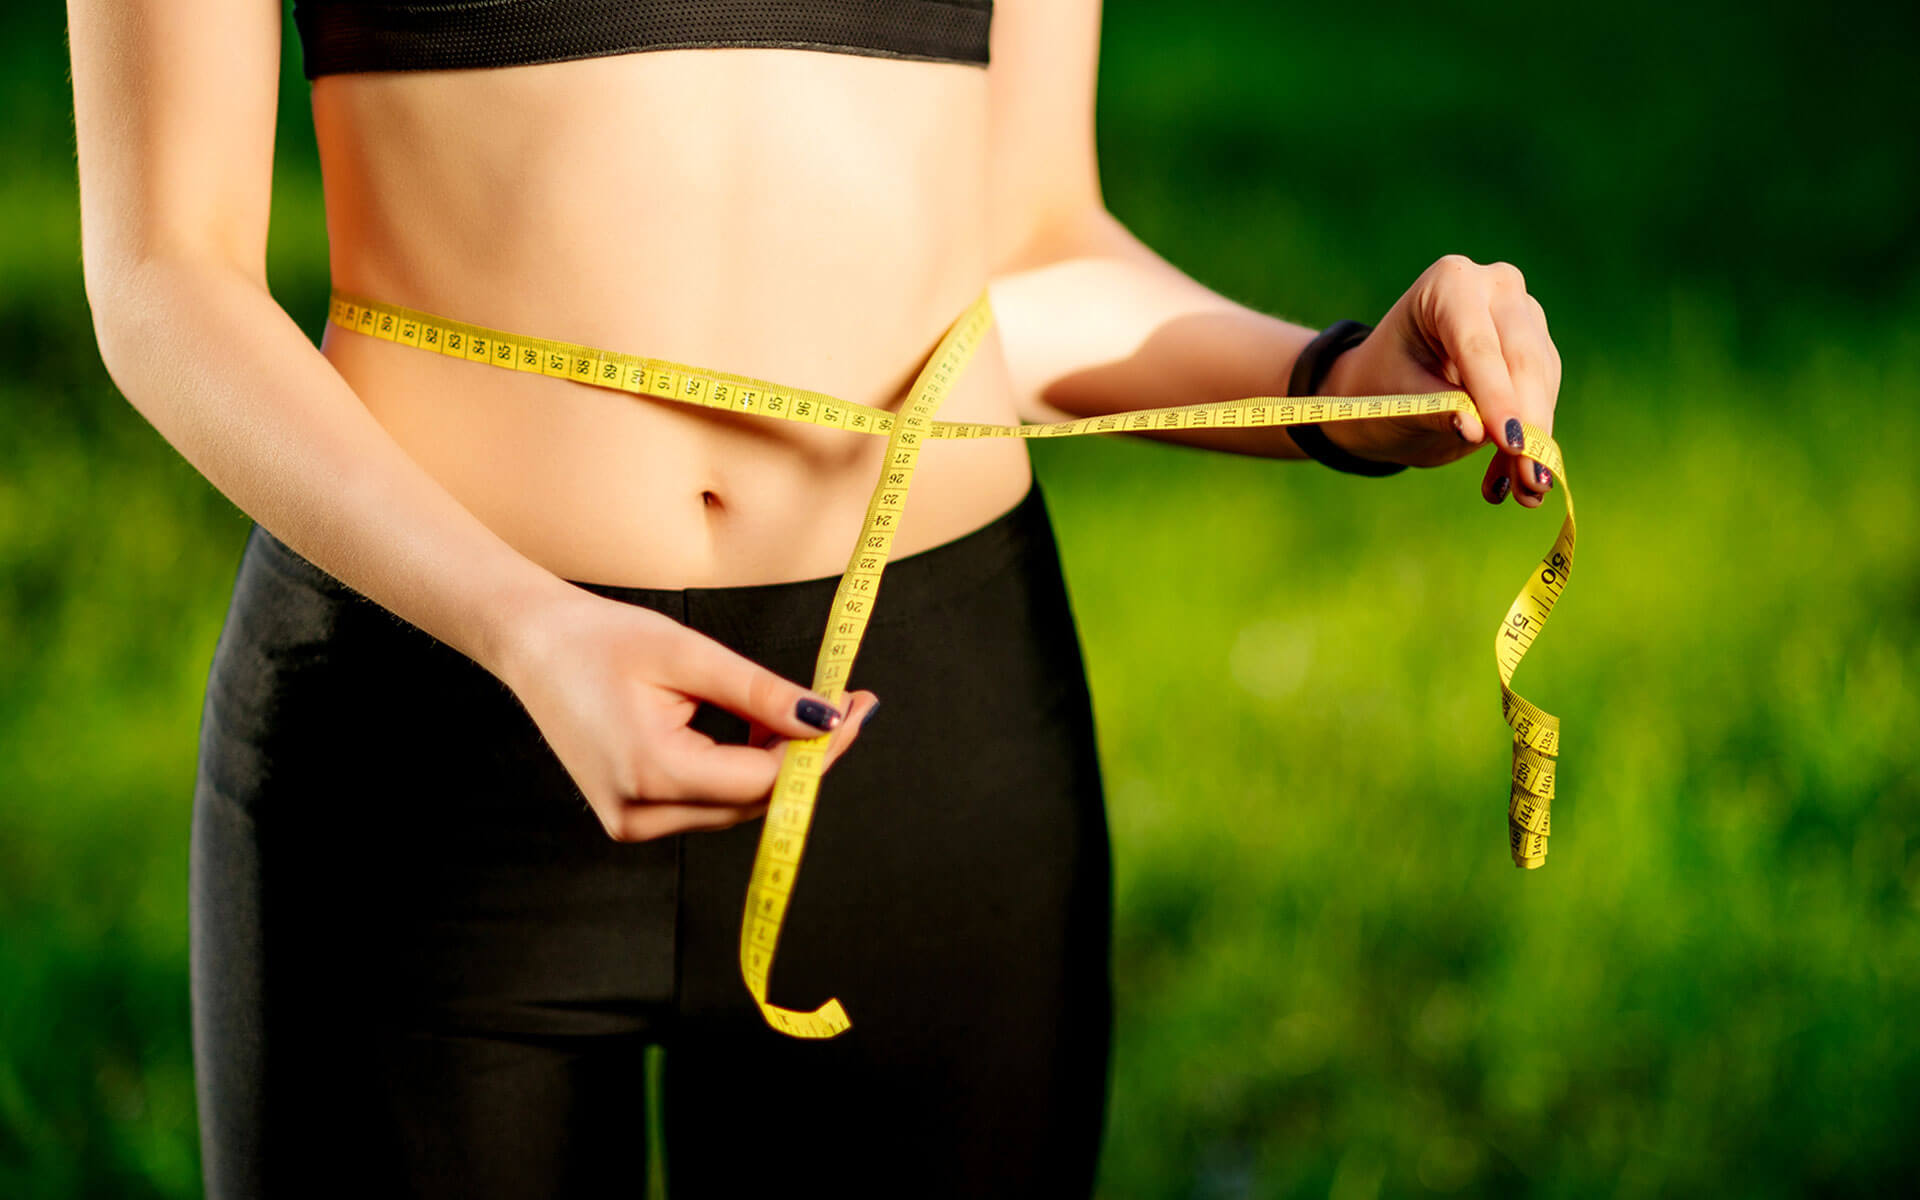 Measuring the waist (Weight management) - health and wellness